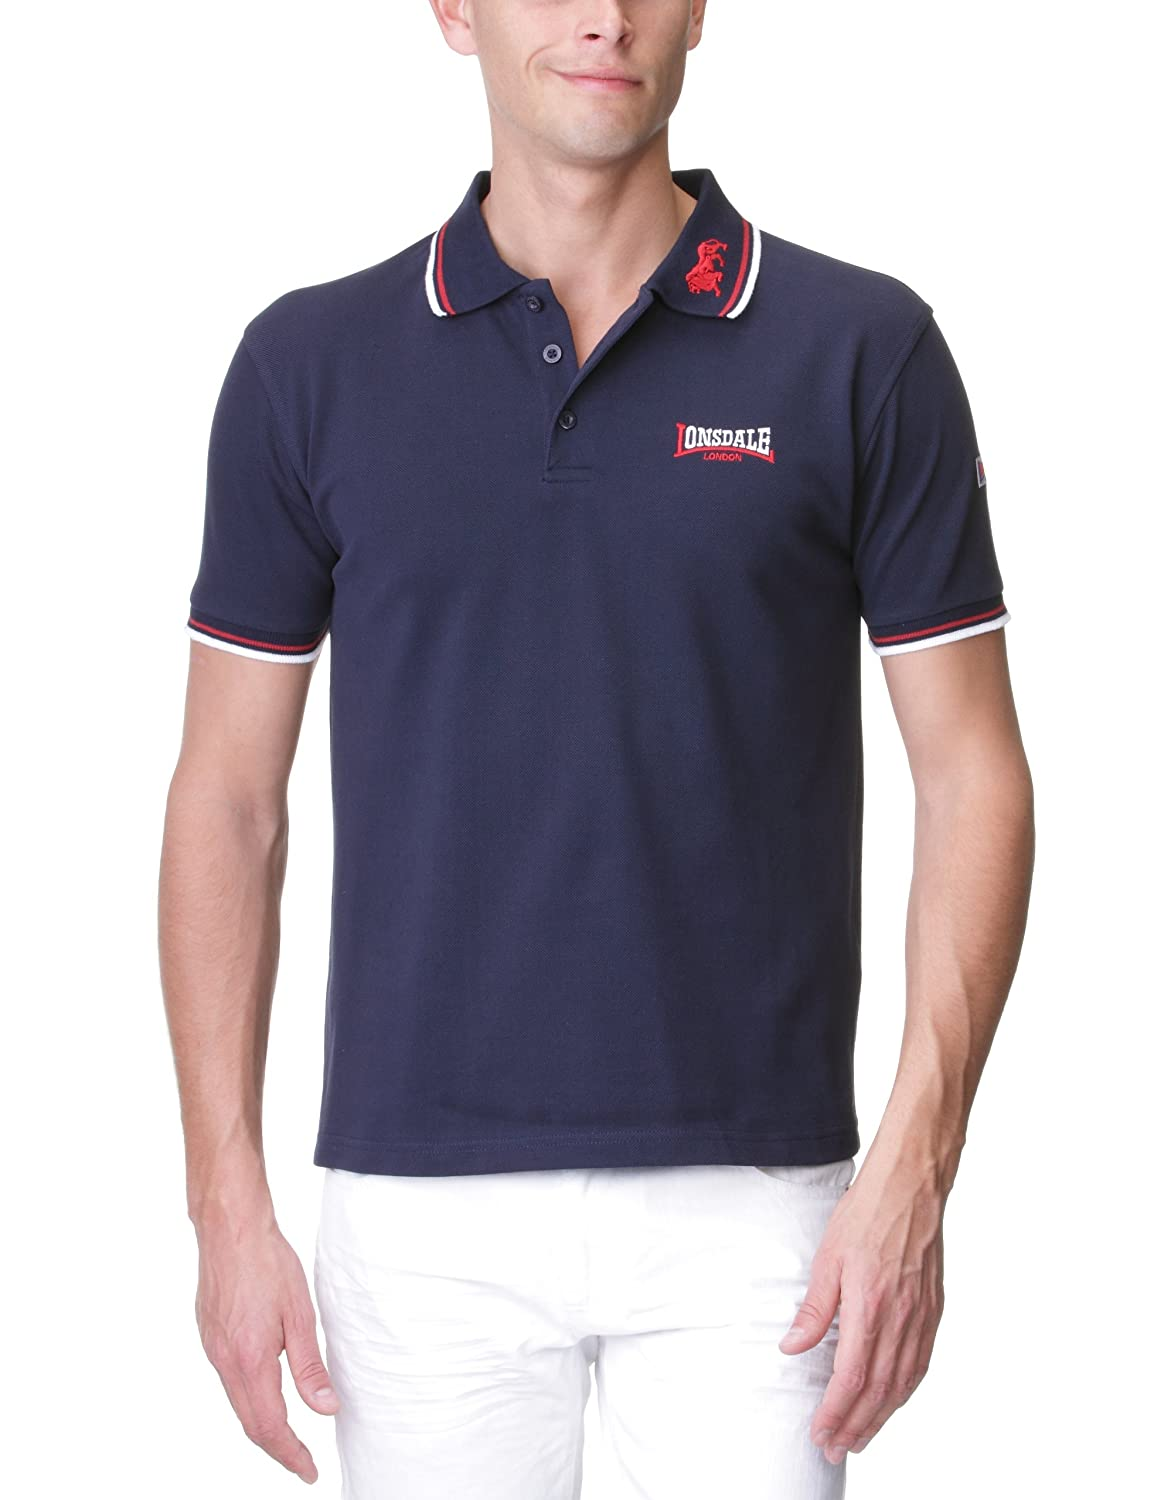 Navy darkred Large Lonsdale Mens Polo Shirt Lion